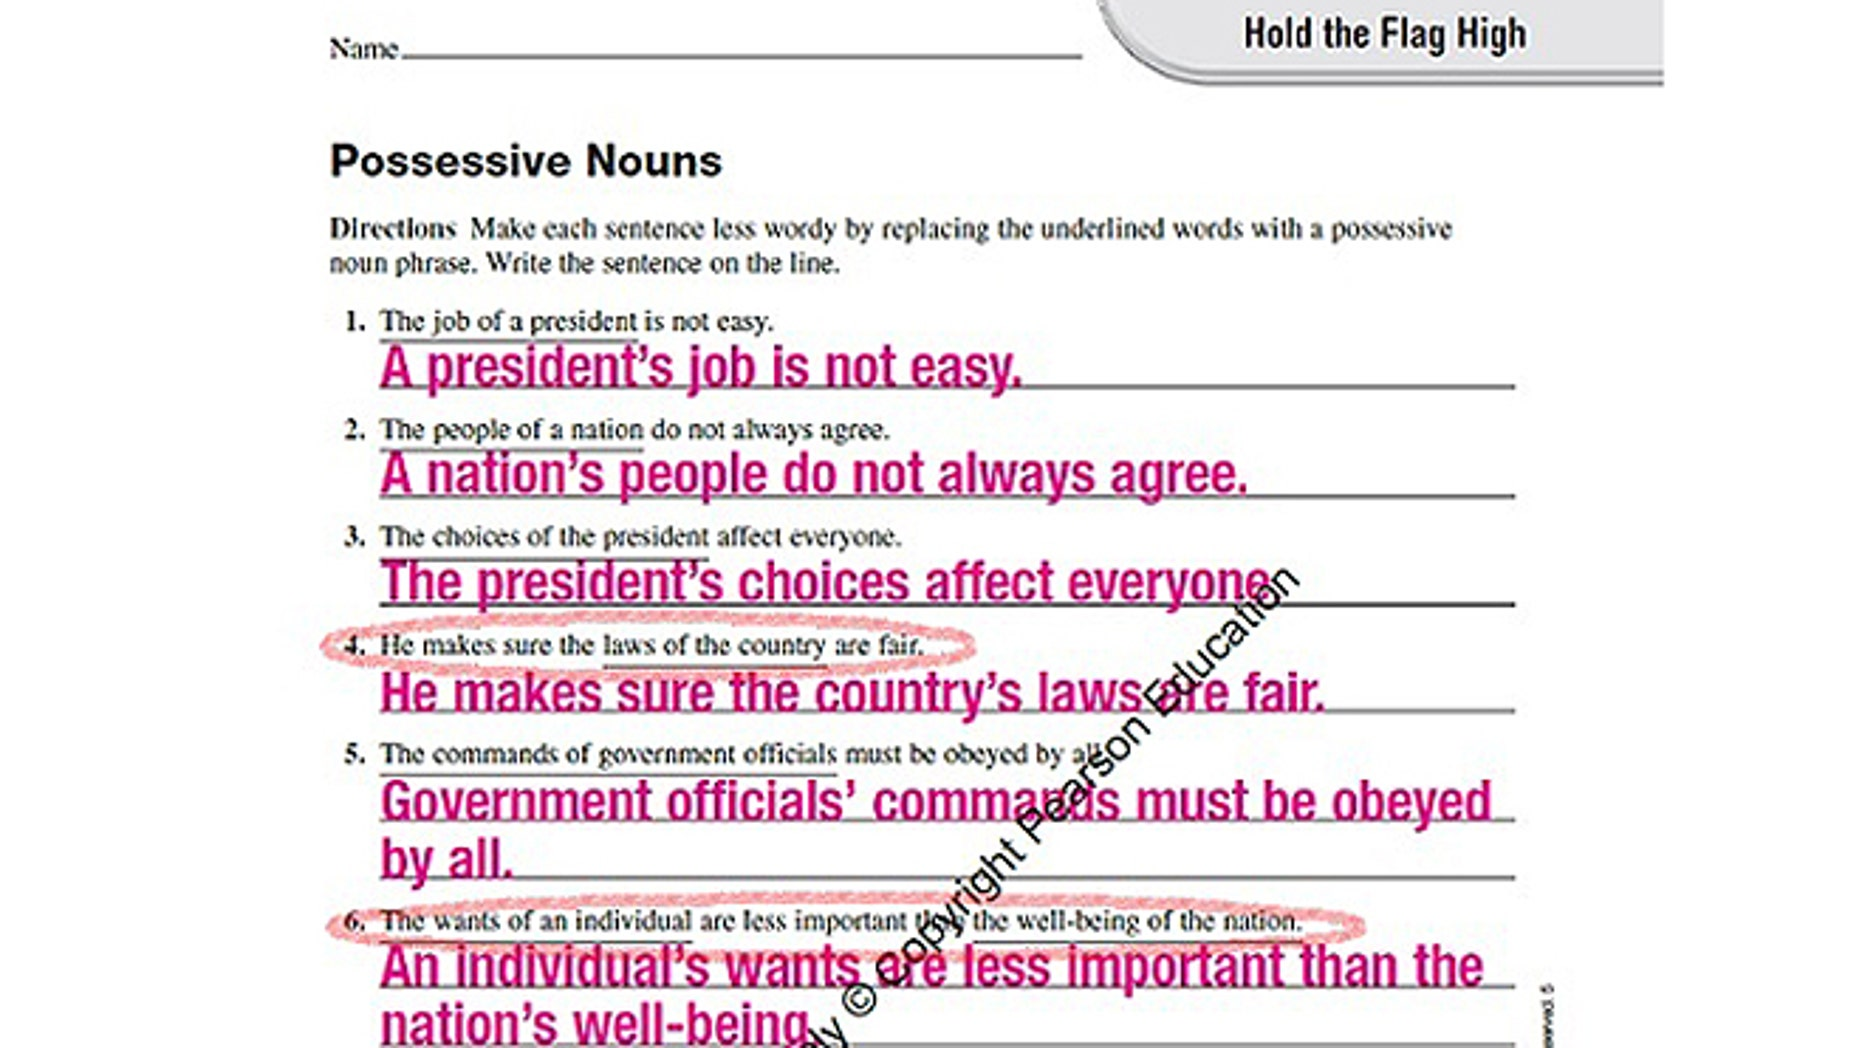 In this worksheet, certain questions are misleading students on the basics of the US political system. Pearson Education, who produced this lesson worksheet told FoxNews.com that they are reviewing the worksheets and will make necessary changes for future copies.